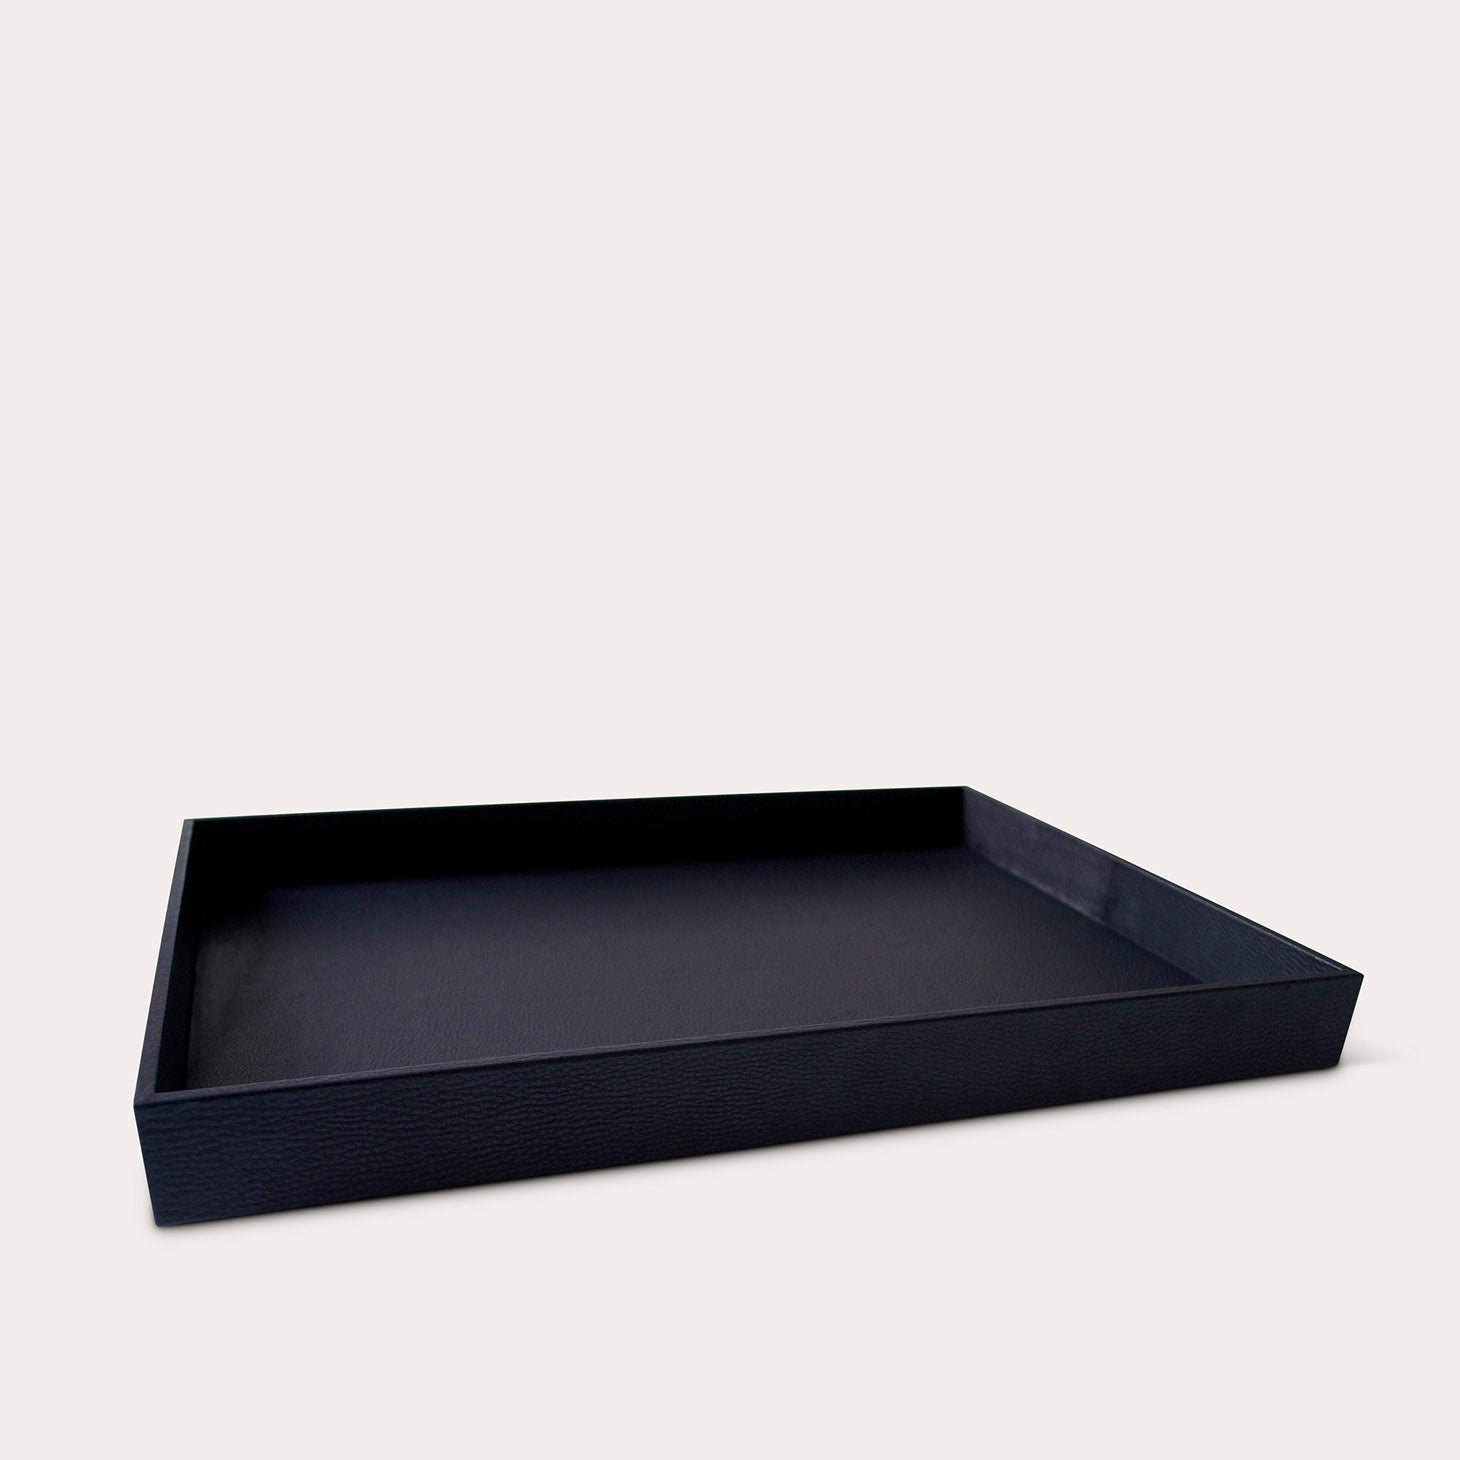 Poster Tray Accessories Michael Verheyden Designer Furniture Sku: 554-100-10140